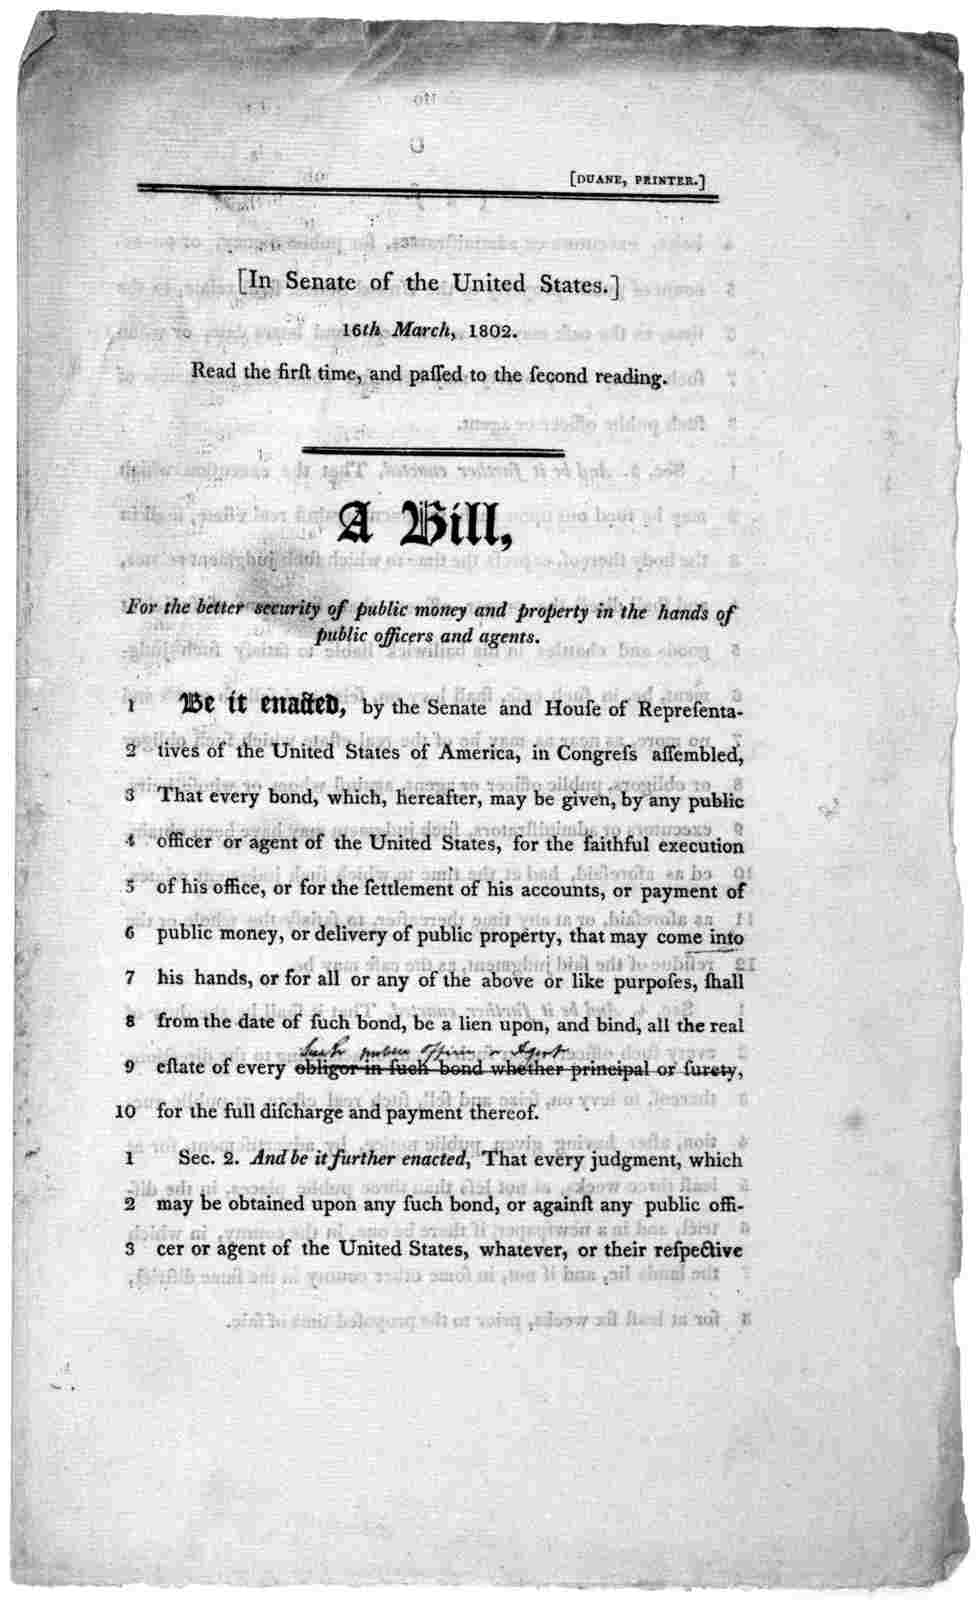 In Senate of the United States. 16th March, 1802. Read the first time, and passed to the second reading. A bill, for the better security of public money and property in the hands of public officers and agents ... [Washington] Duane, printer [180